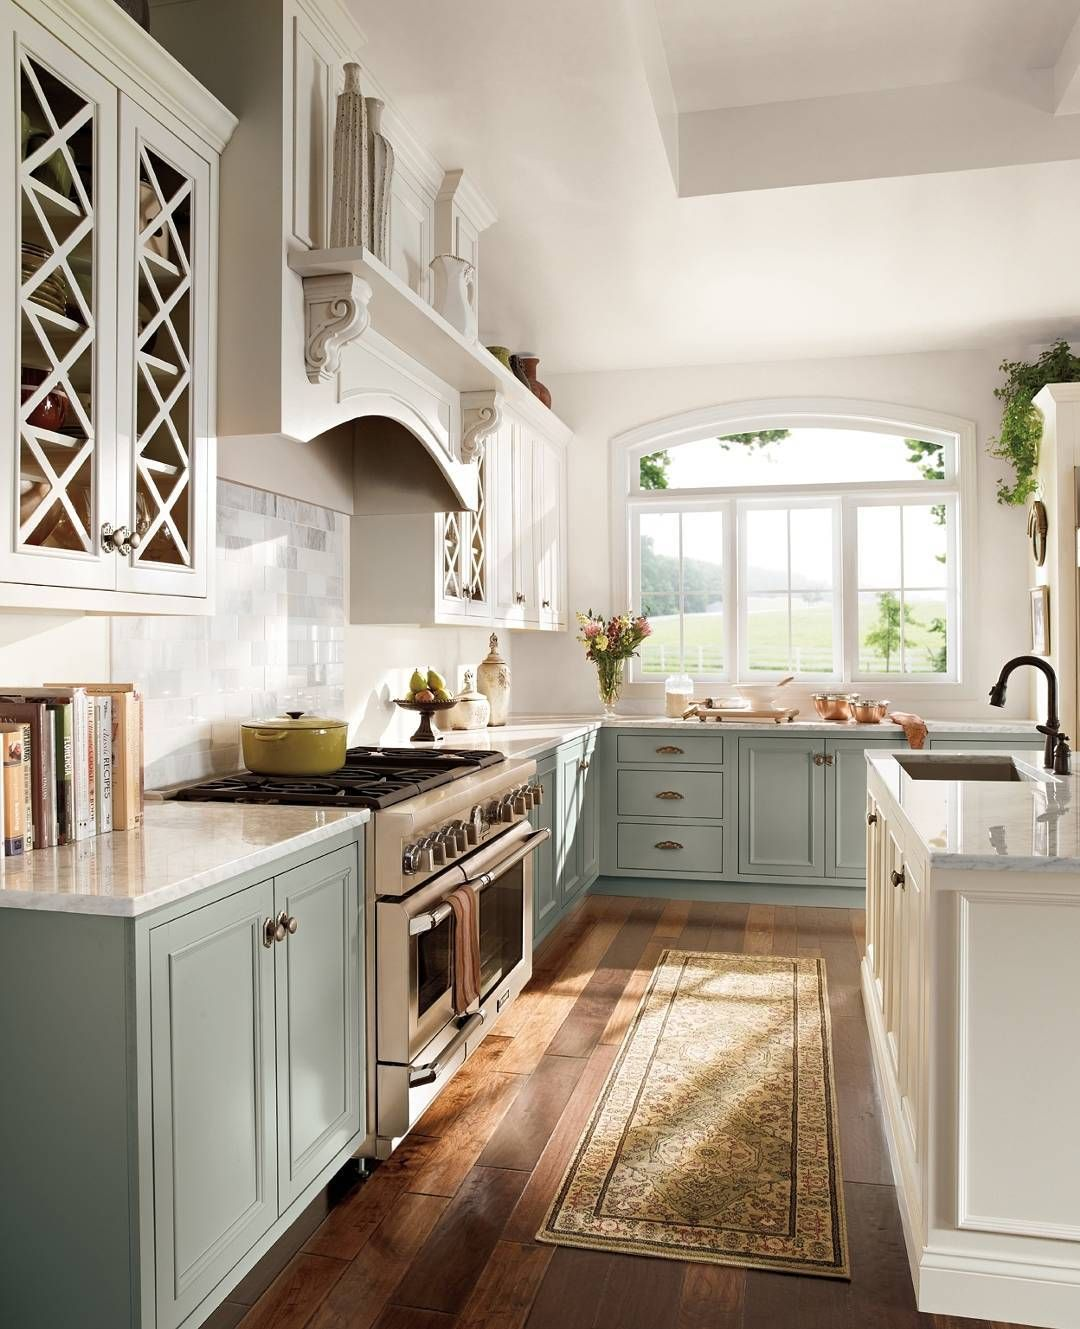 French Country Kitchen Cabinets: Two-toned #kitchen Cabinets Break The Rules In The Best